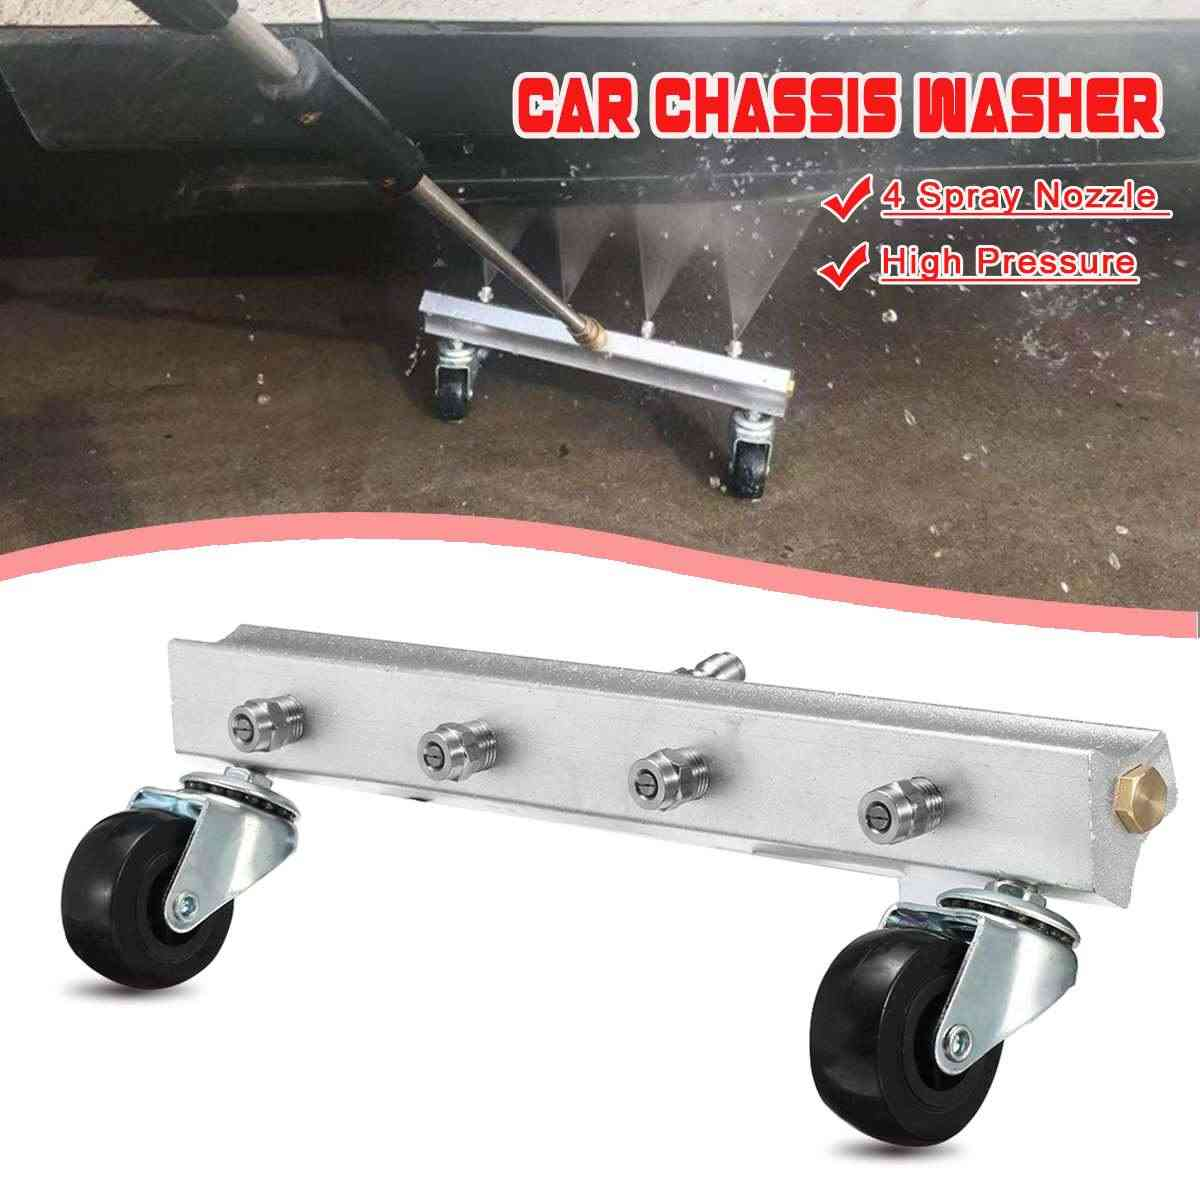 "Hogedrukreiniger Auto Onder Body Chassis Power Wasmachine Auto Wasmachine 4 Sproeikop Cleaner Kit voor 1/4"" connector"